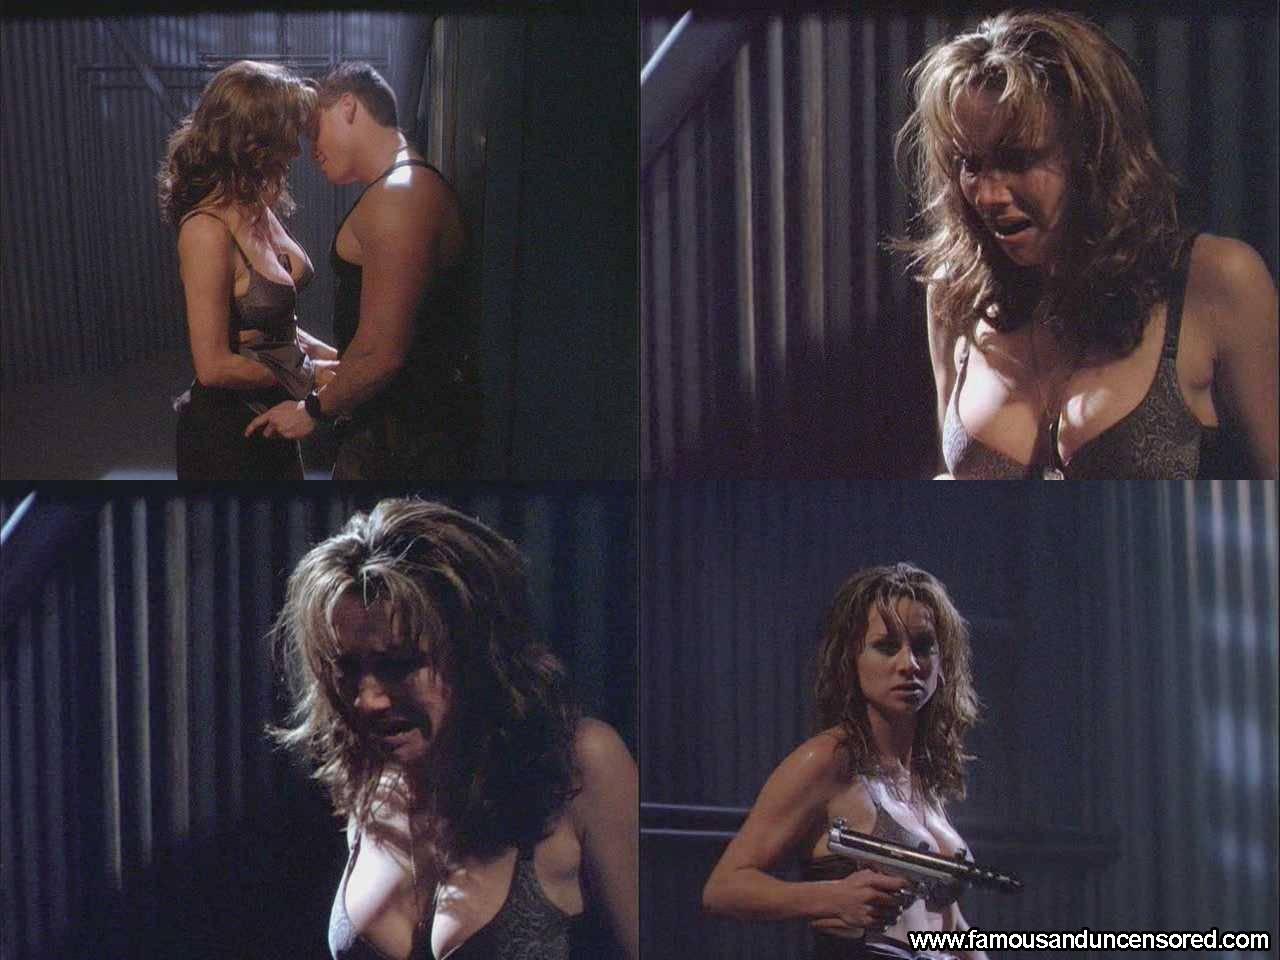 Debbe Dunning presents her cleavage